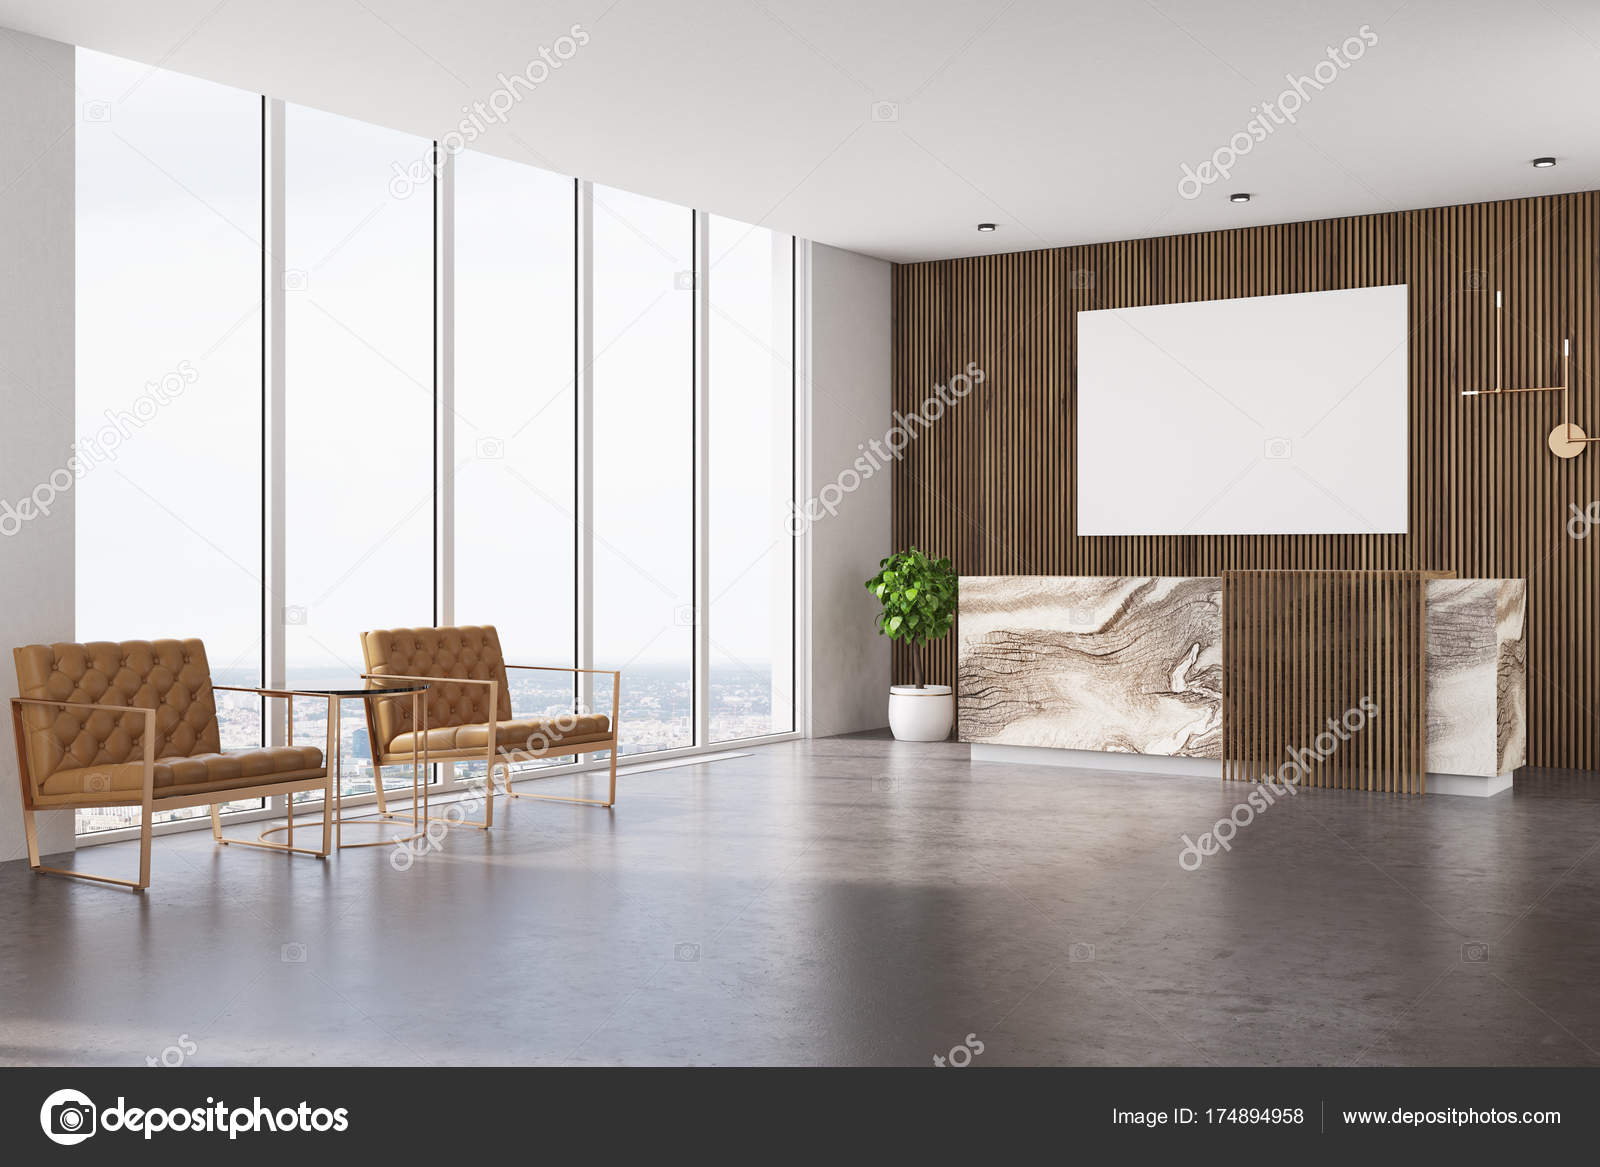 Wooden Reception, Armchairs And Poster U2014 Stock Photo